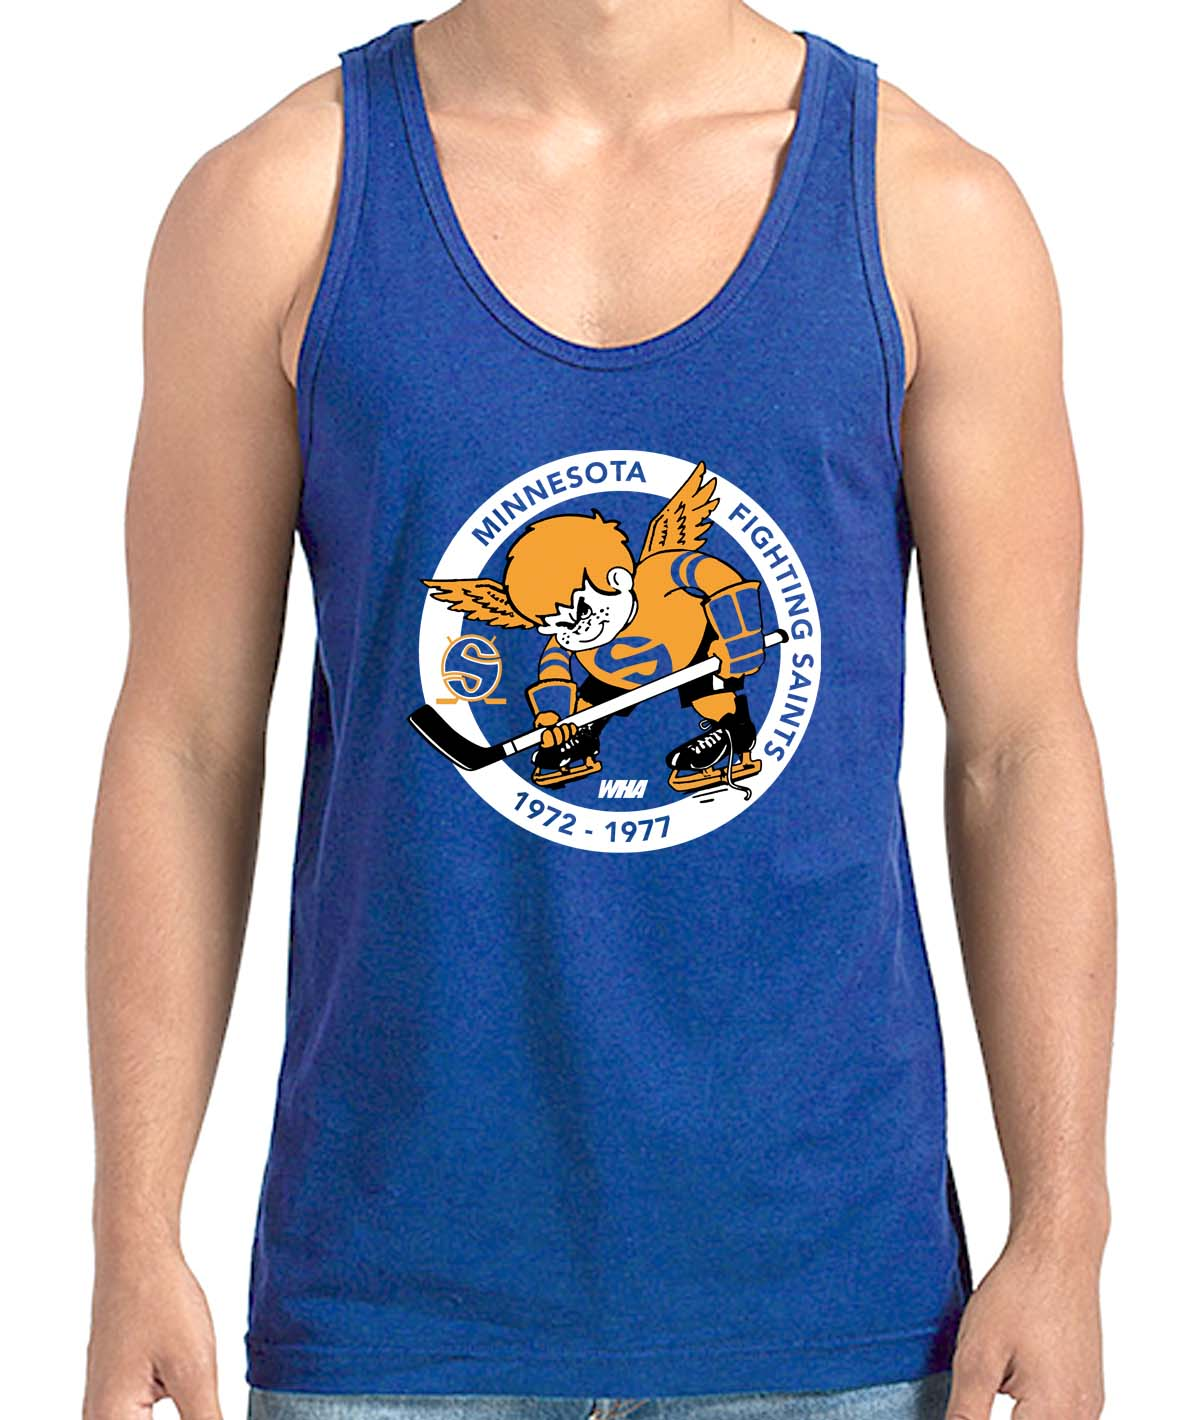 minnesota-fighting-saints-WHA-hockey-tank-top